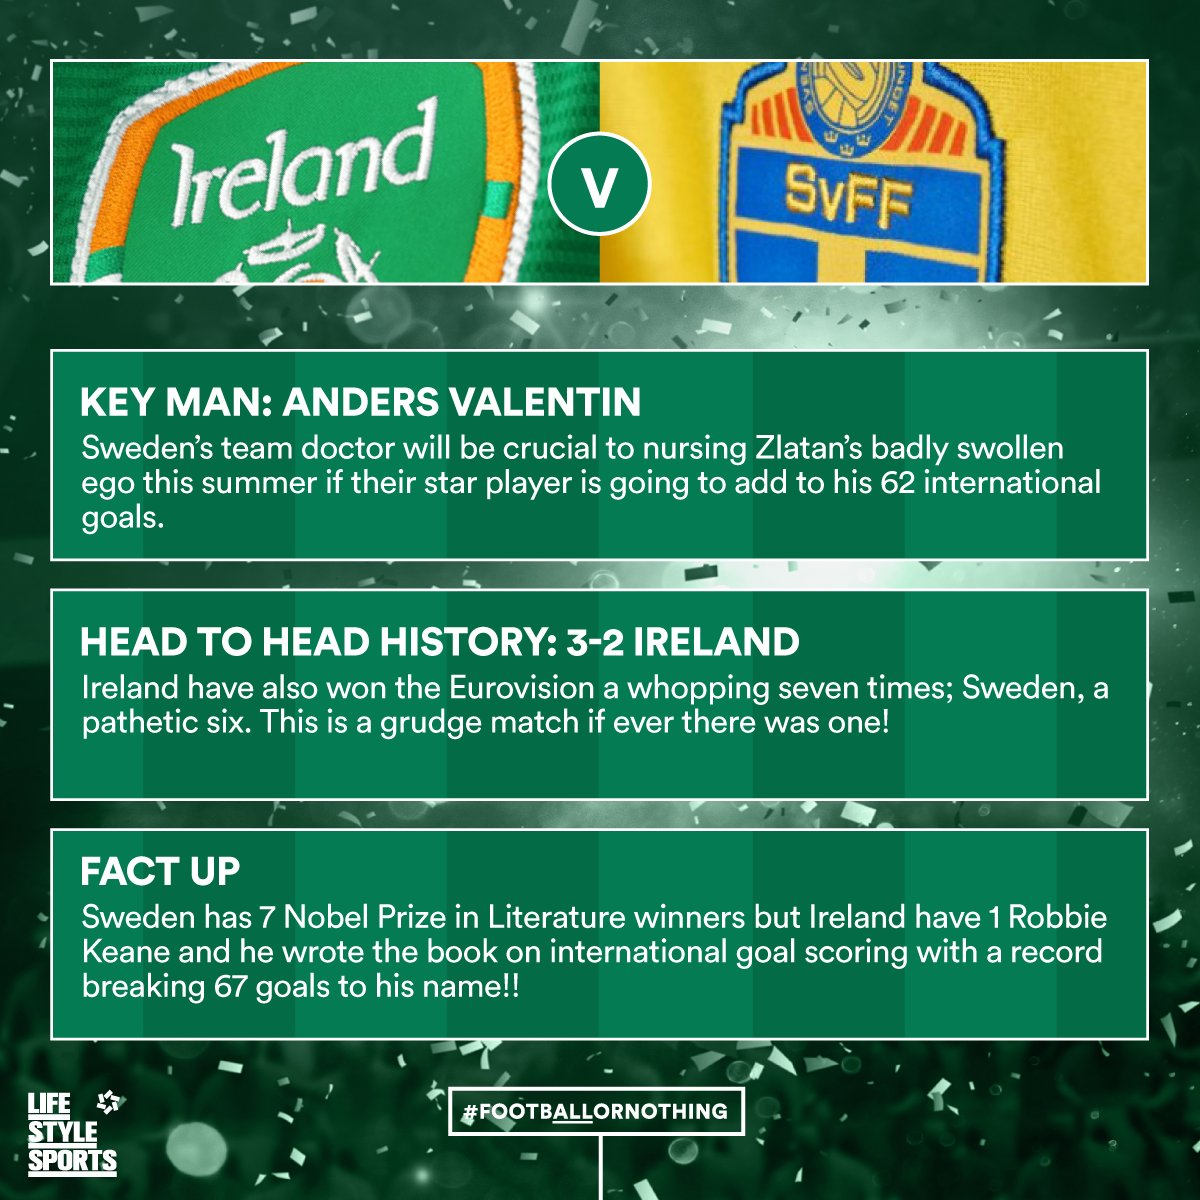 48 hours to go, time to brush up on your football banter with our handy Blagger's Guide. #FootballorNothing #IREvSWE https://t.co/7yrtvgx1IS